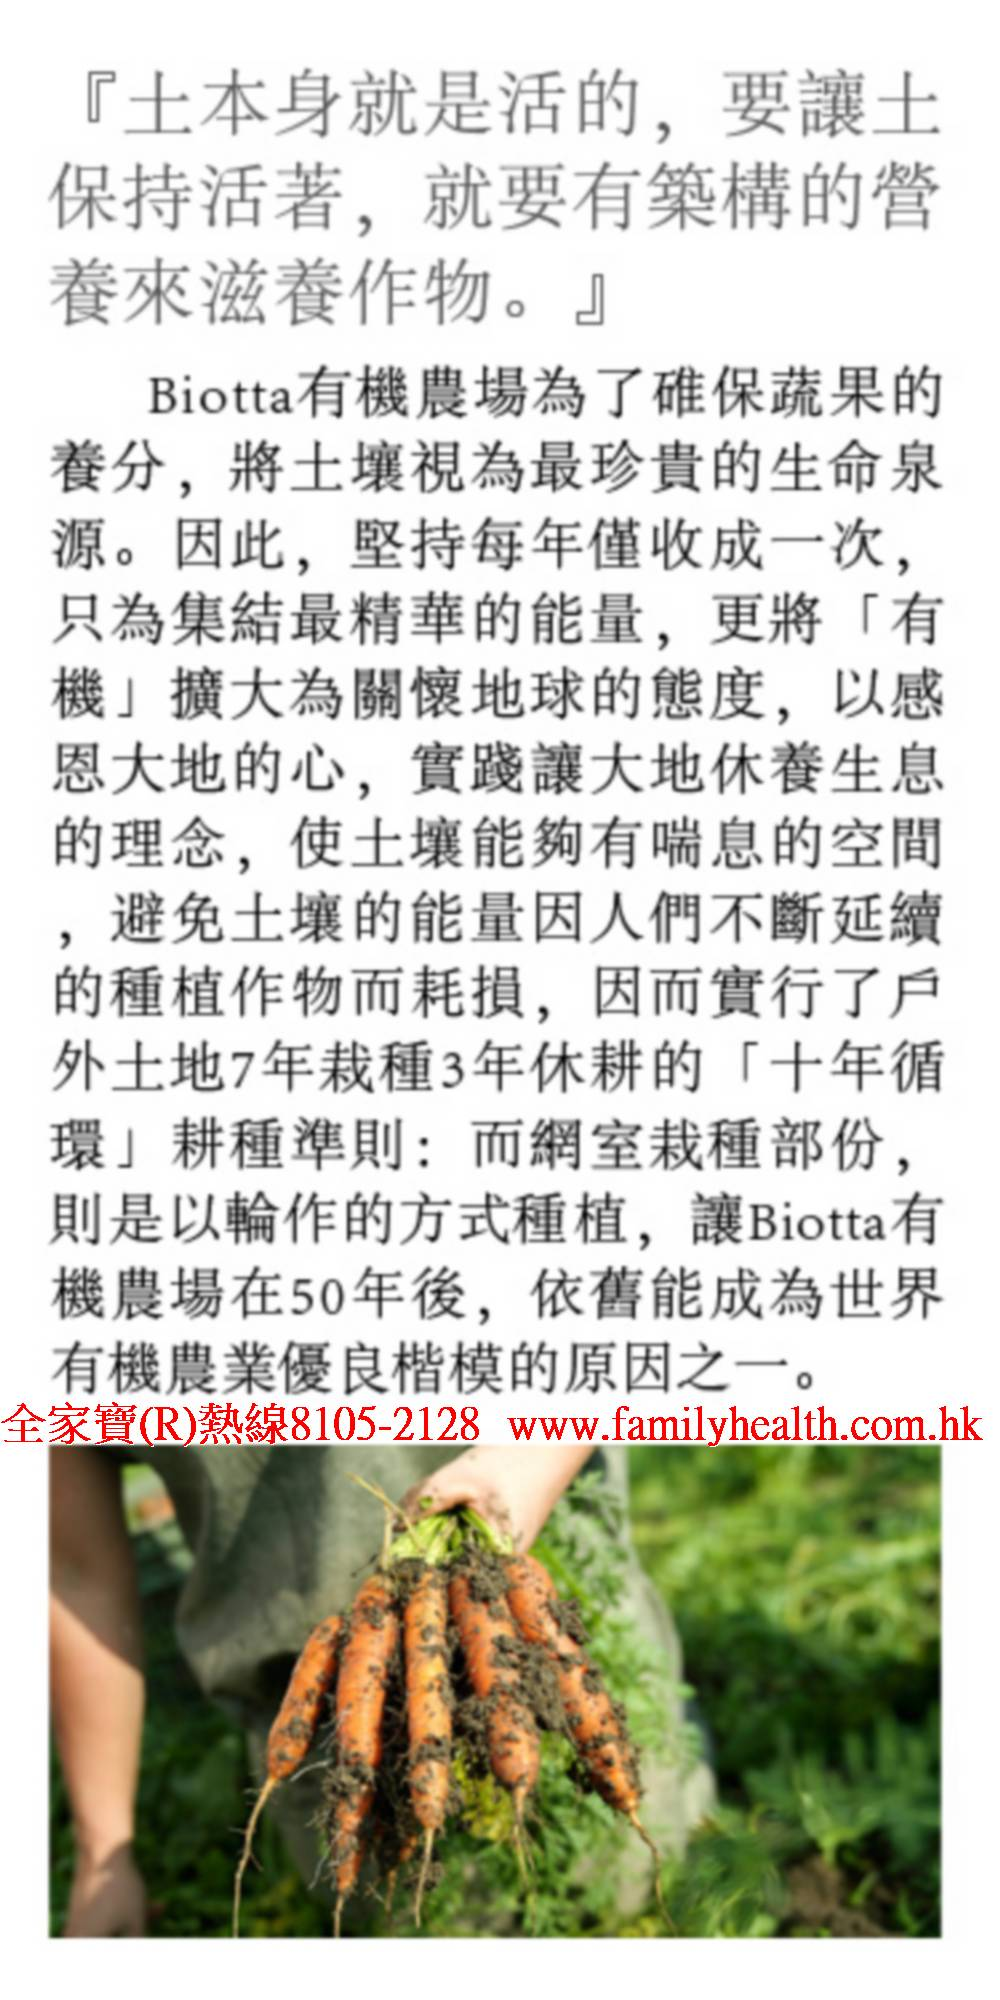 http://www.familyhealth.com.hk/files/full/944_3.jpg